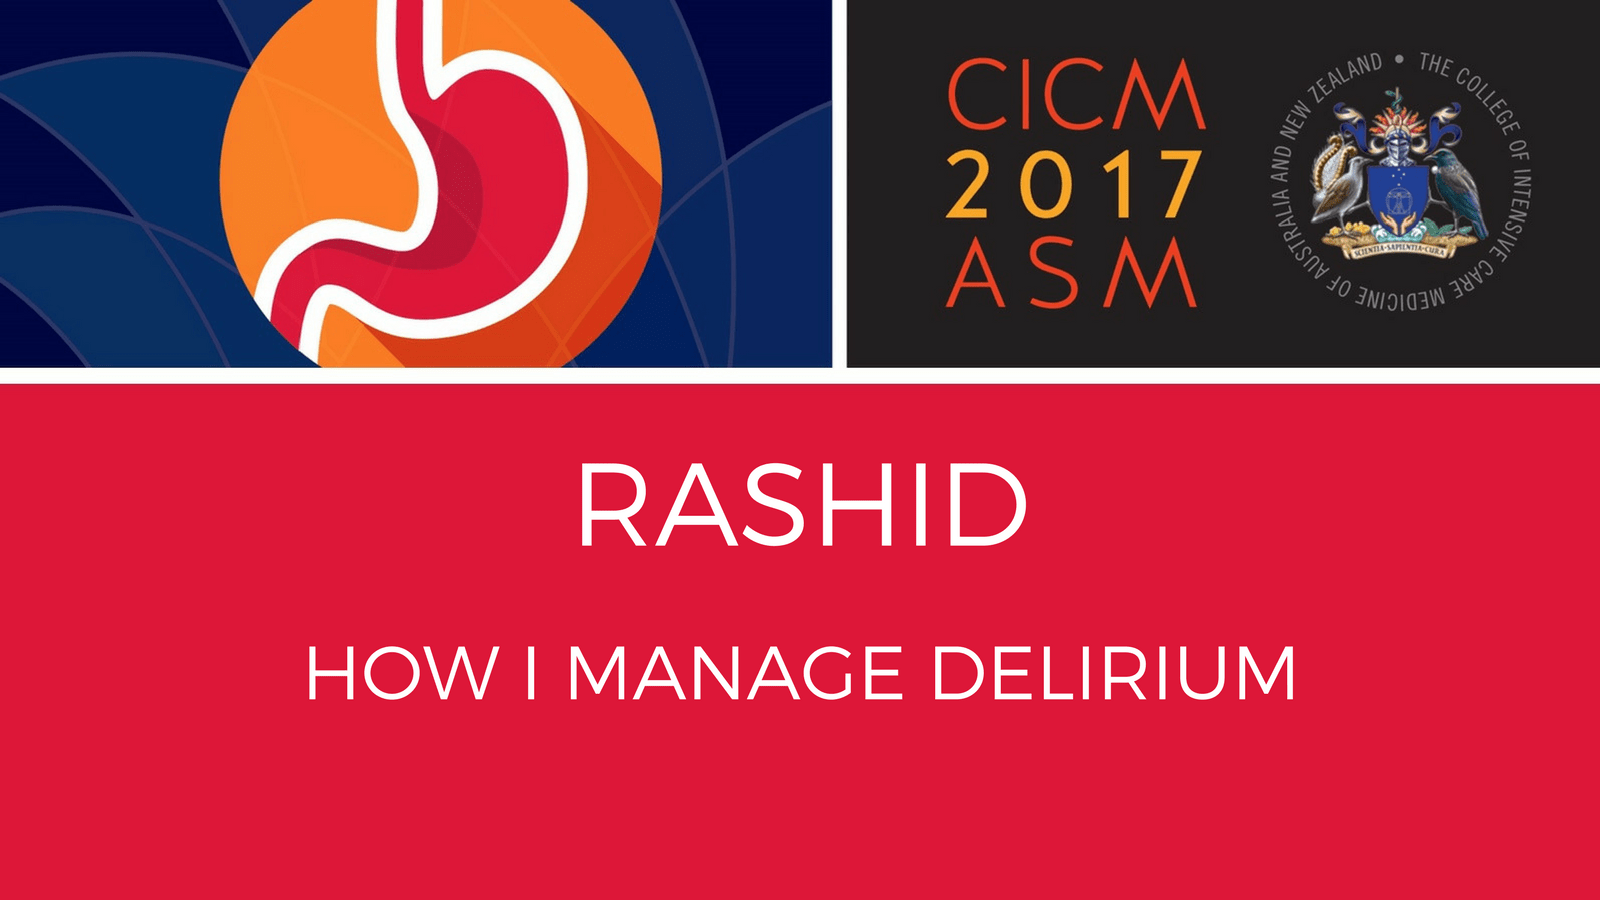 How I manage delirium by Dr Nudrat Rashit